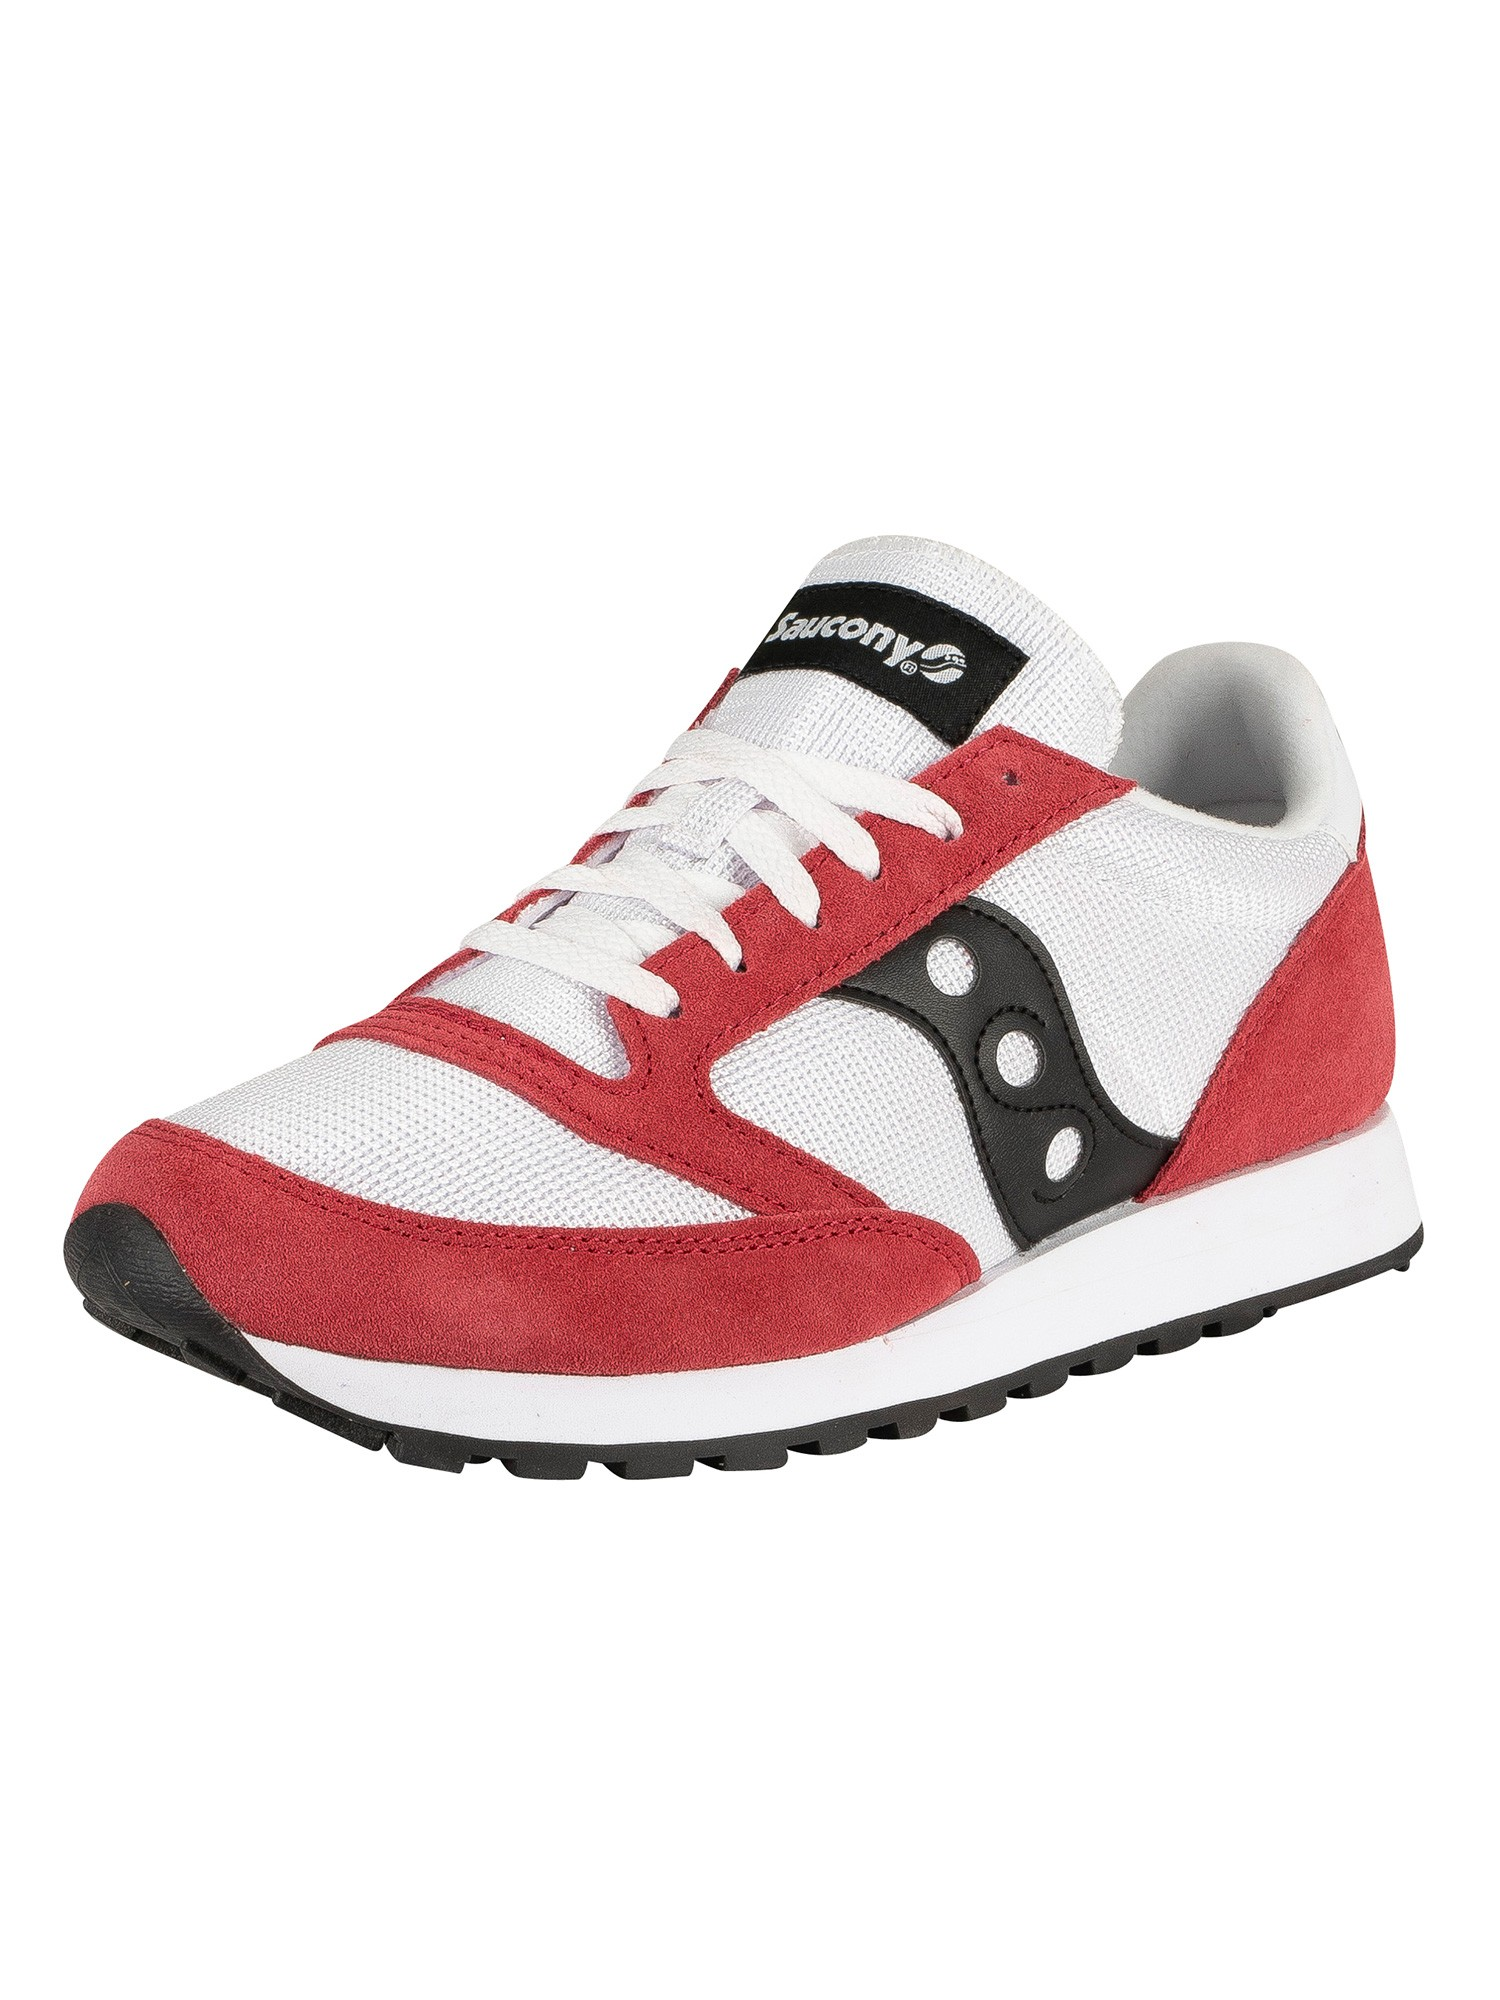 promo code b8685 c8918 Saucony Jazz Original Vintage Trainers - White/Red/Black